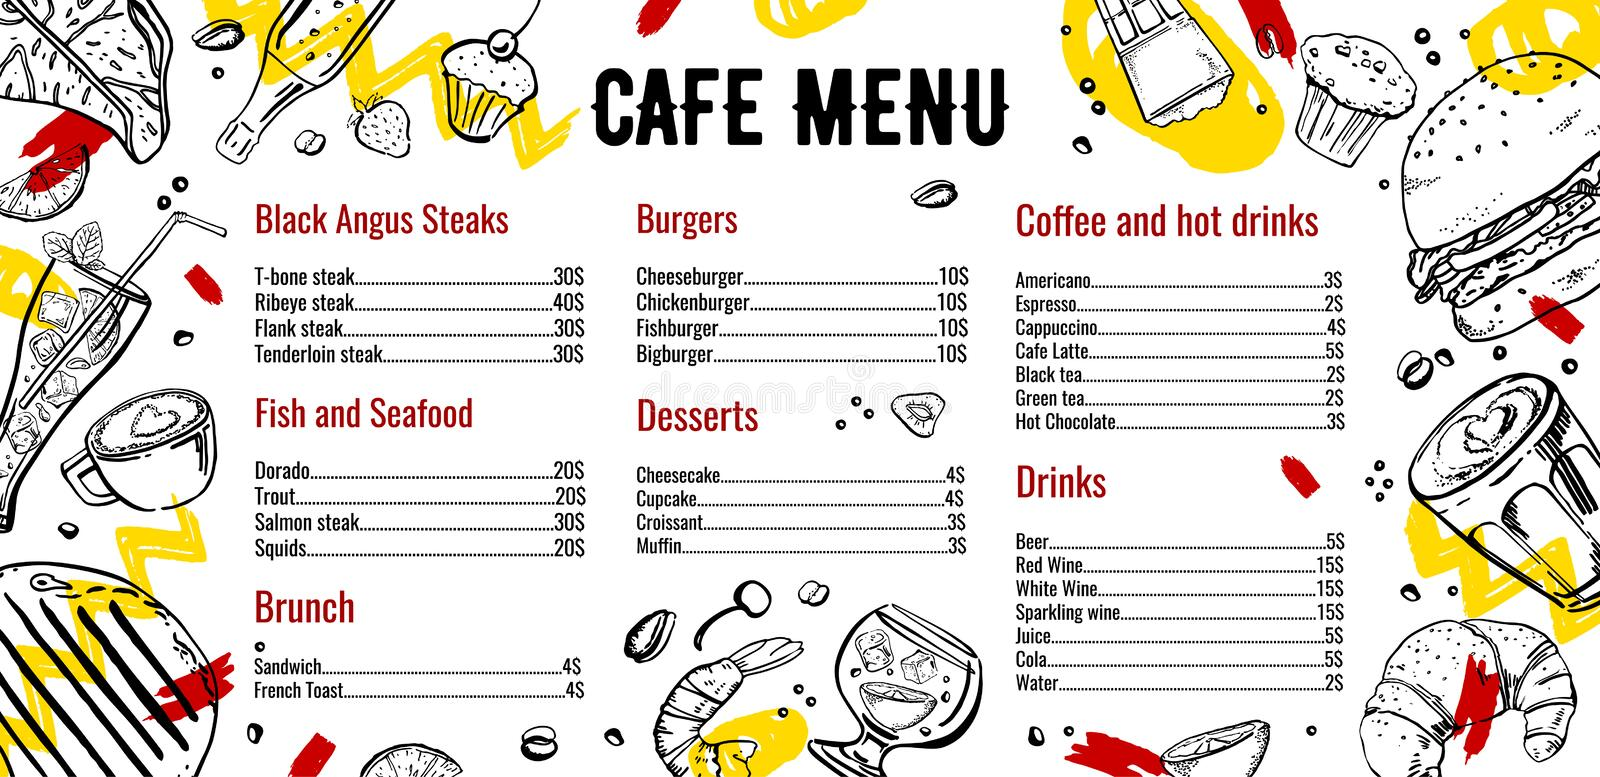 Cafe menu design template with list of steaks, fish,  burgers, drinks, coffee and deserts. Outline vector hand drawn sketch illustration with food black on vector illustration